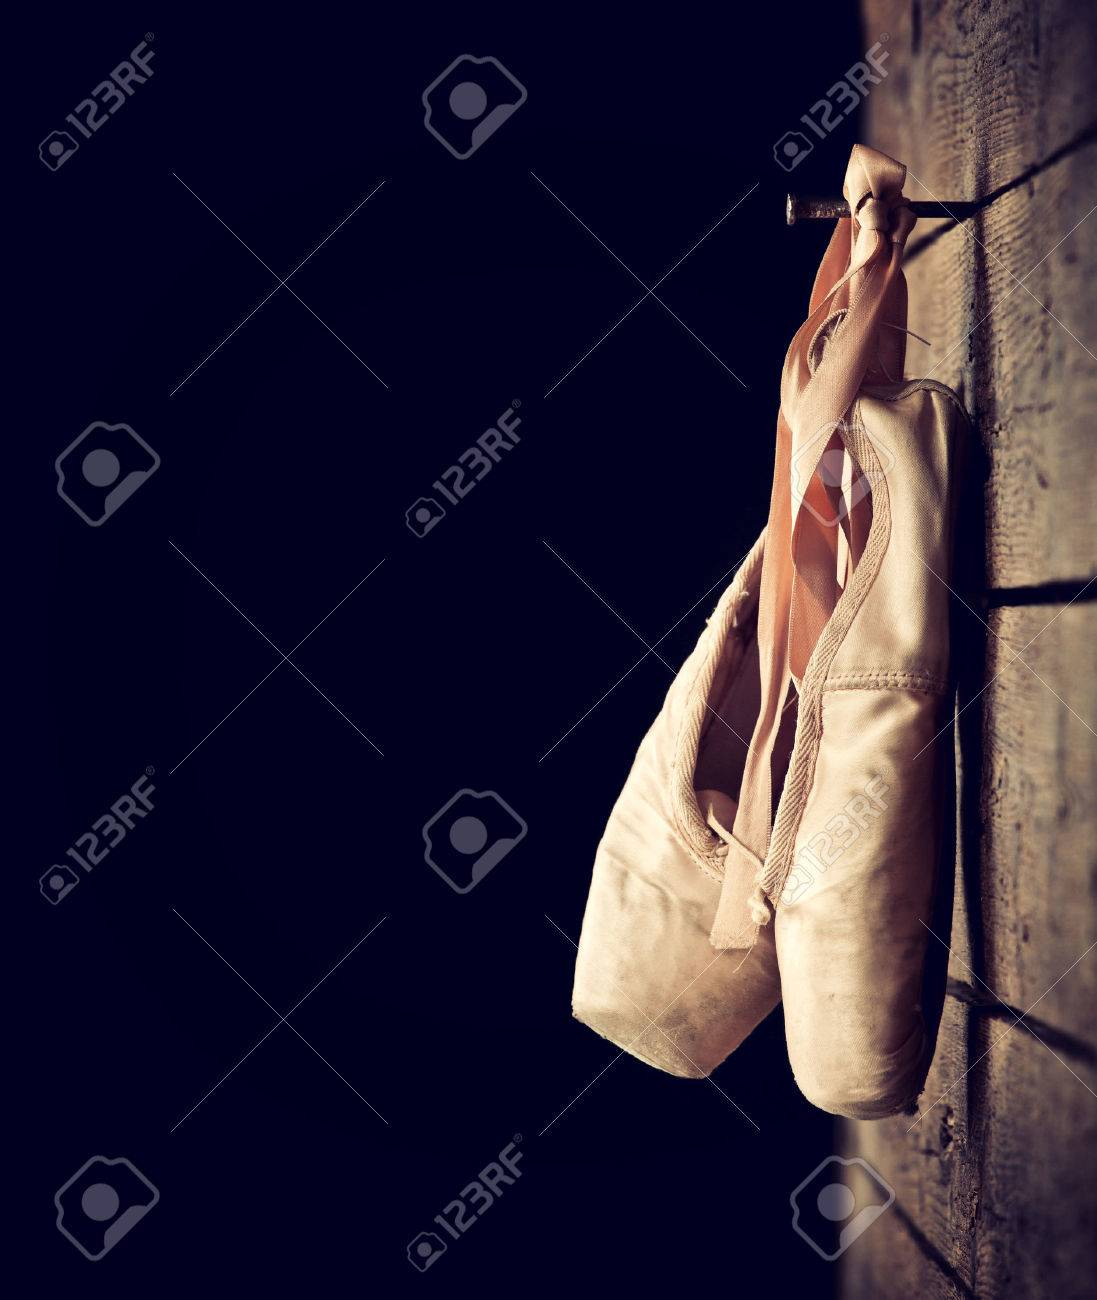 Ballet Shoes Photography